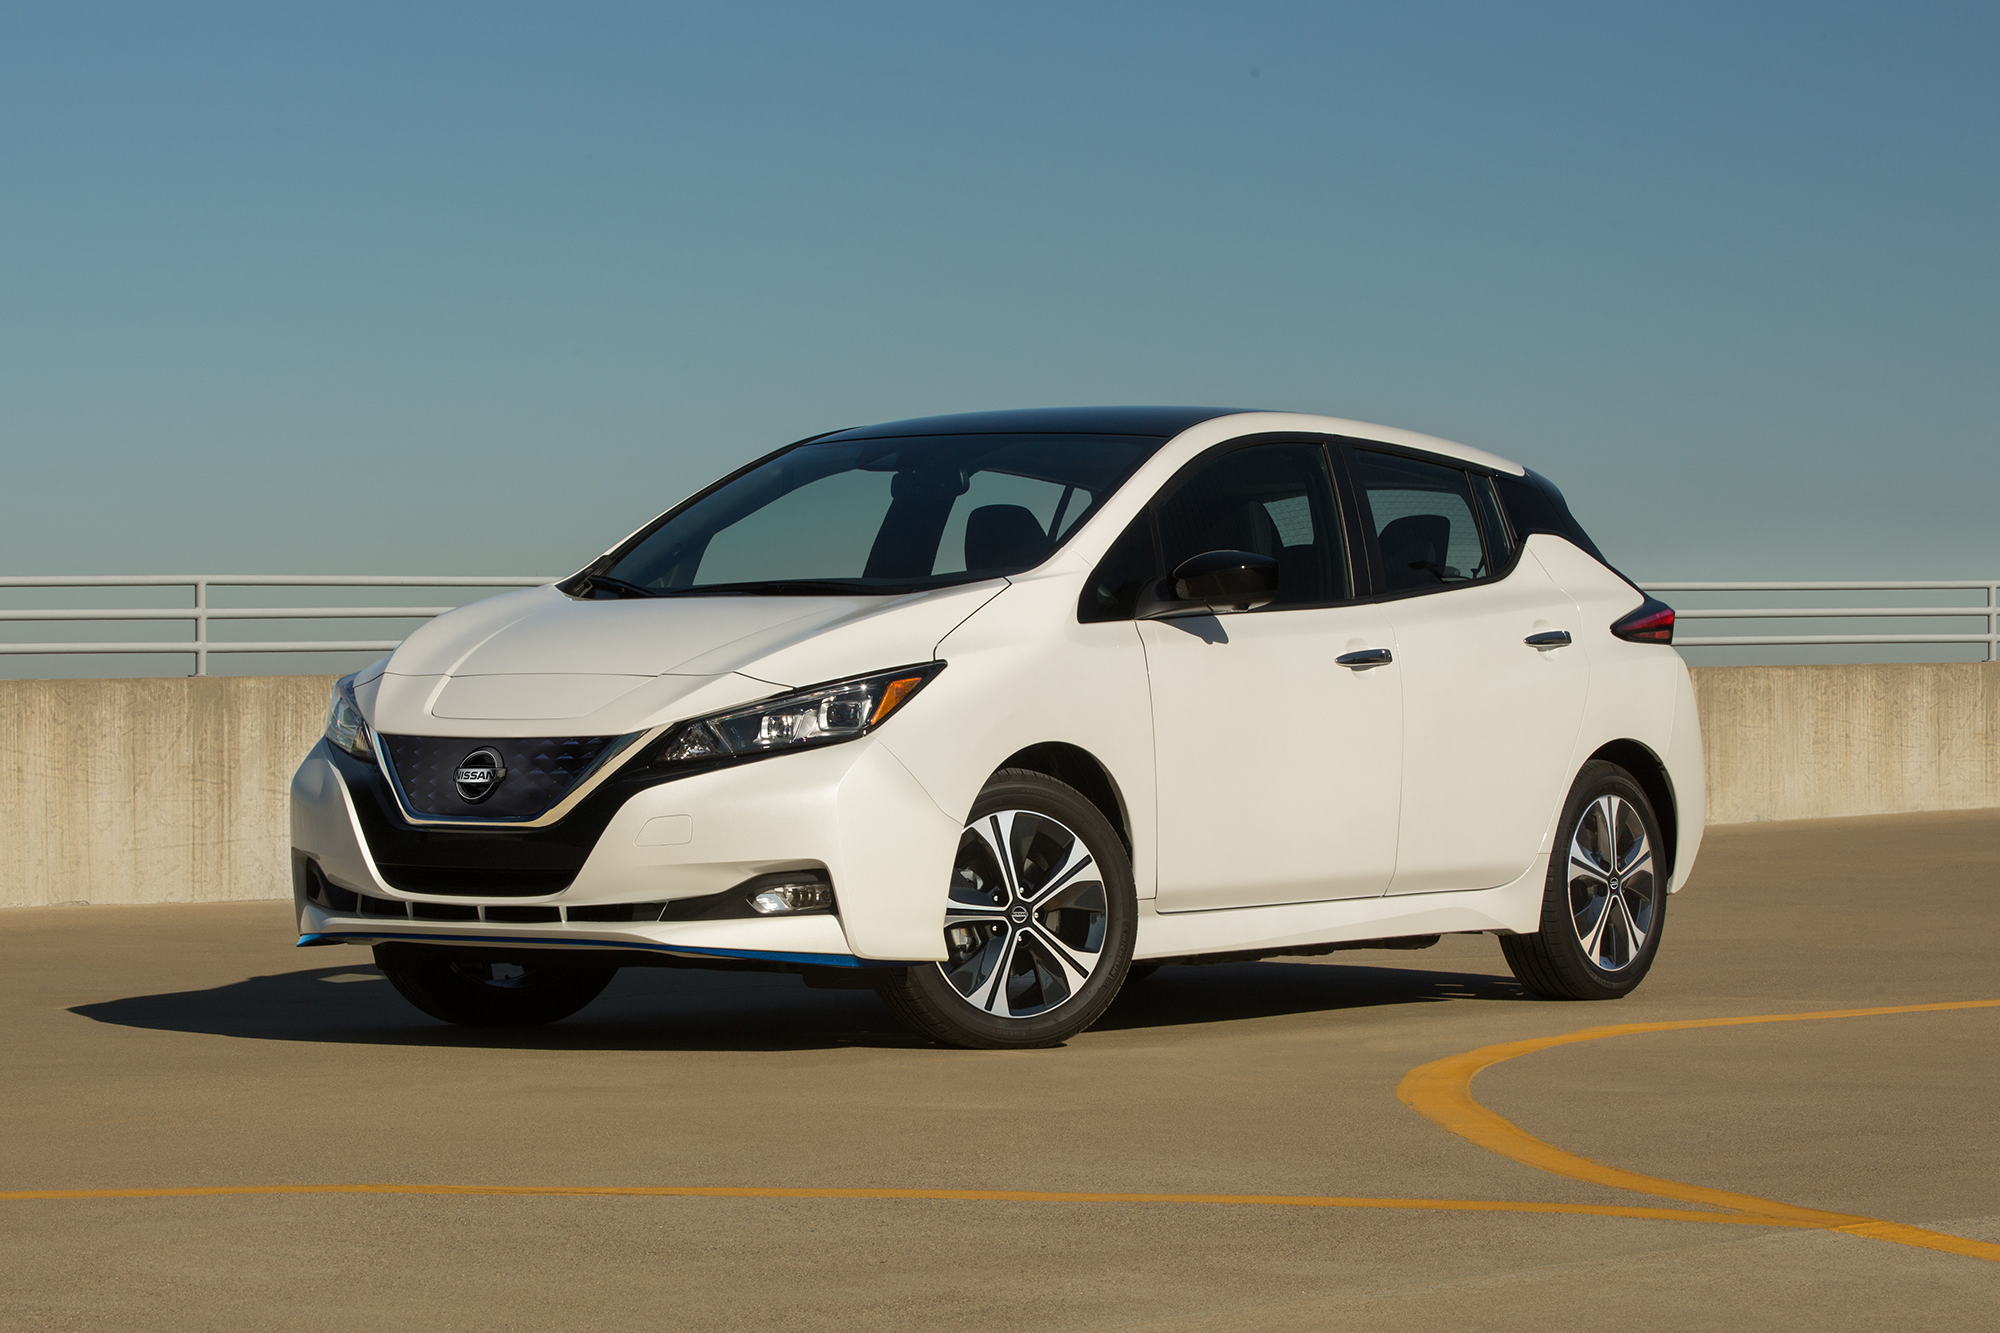 Nissan Leaf: Which Should You Buy, 2019 or 2020?